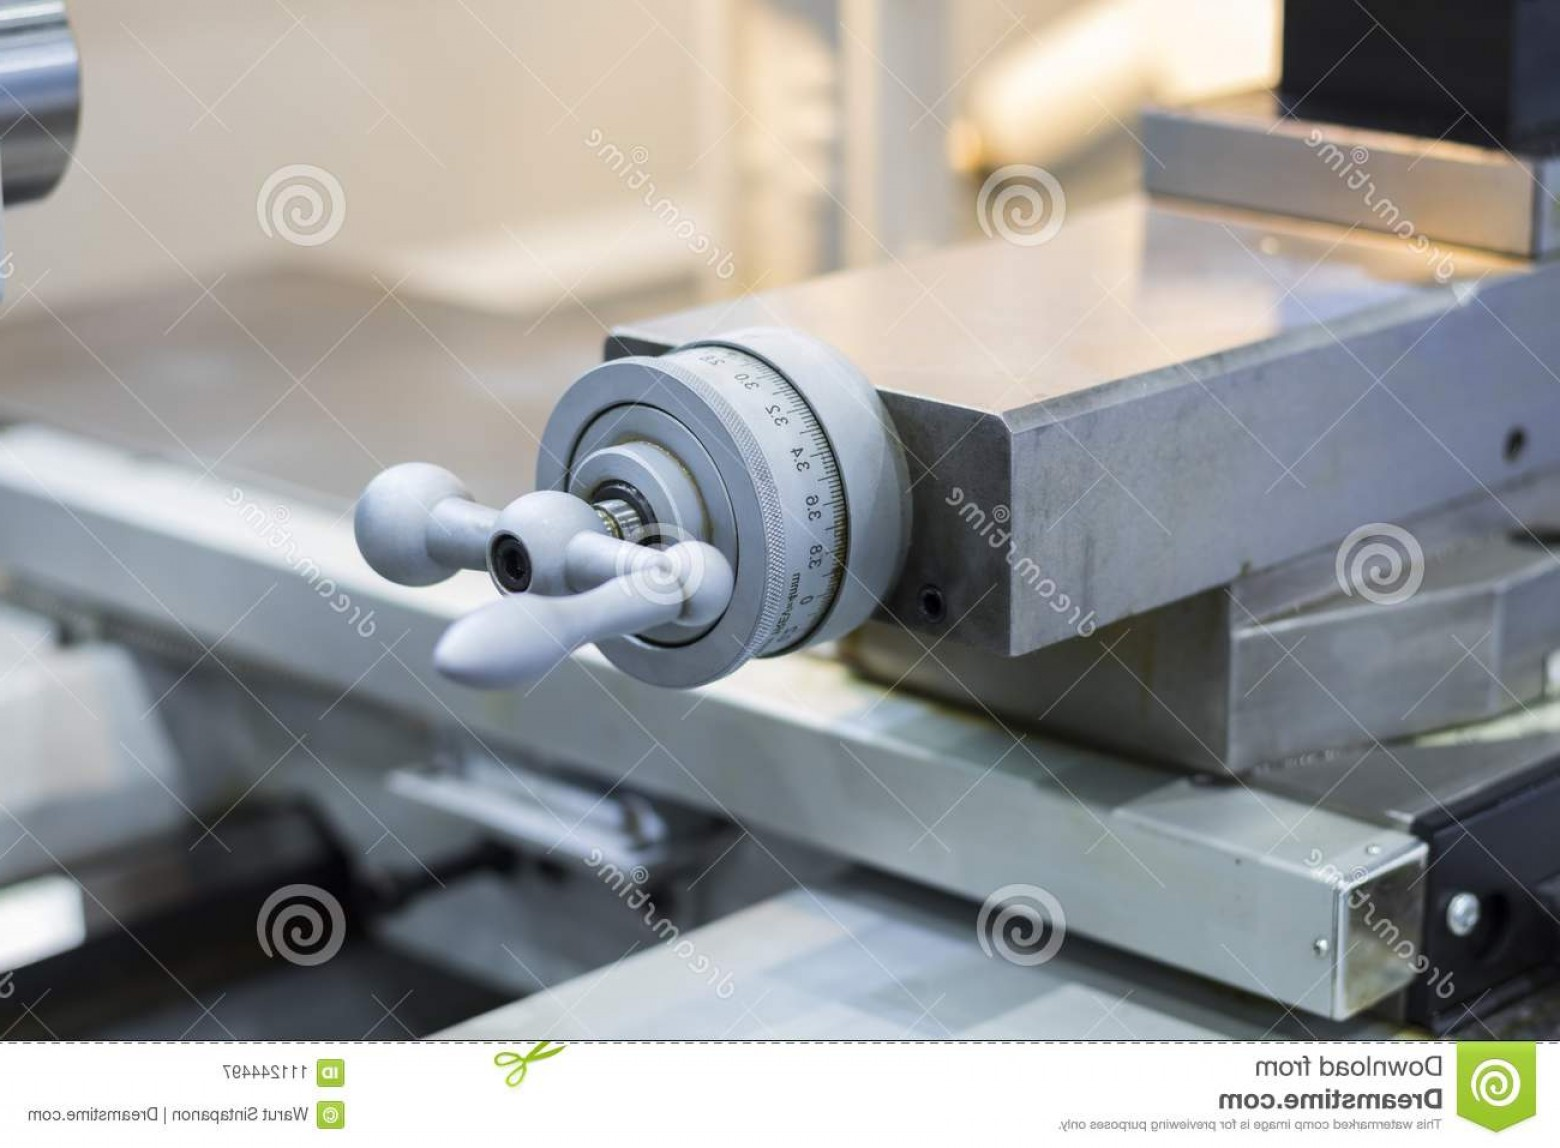 Hand Lathe Vector: Hand Wheel Manual Lathe Machine Hand Wheel Manual Lathe Machine Close Up Image